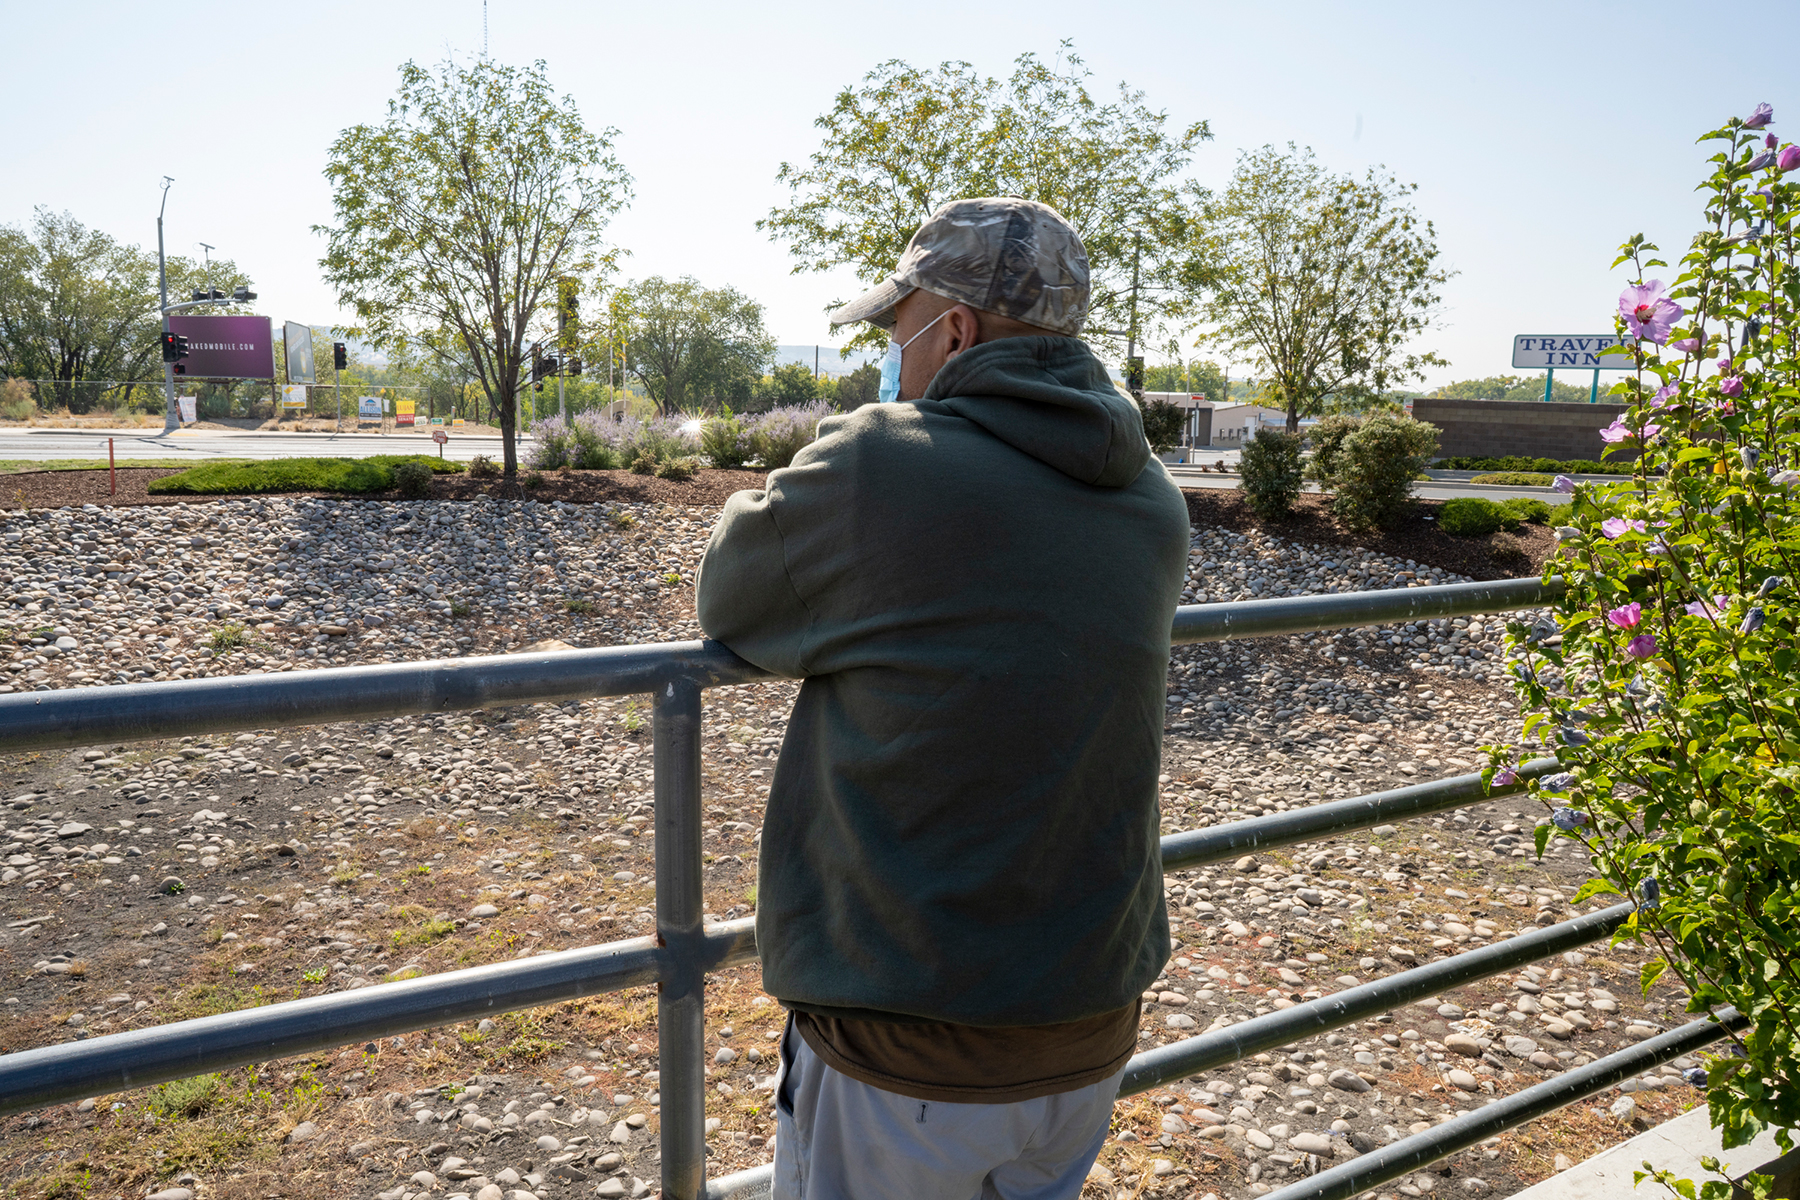 Mr. Zhang, who poured in his life savings into what he thought was a legal cannabis farm, gazes over the fence at a Walmart parking lot in Farmington.